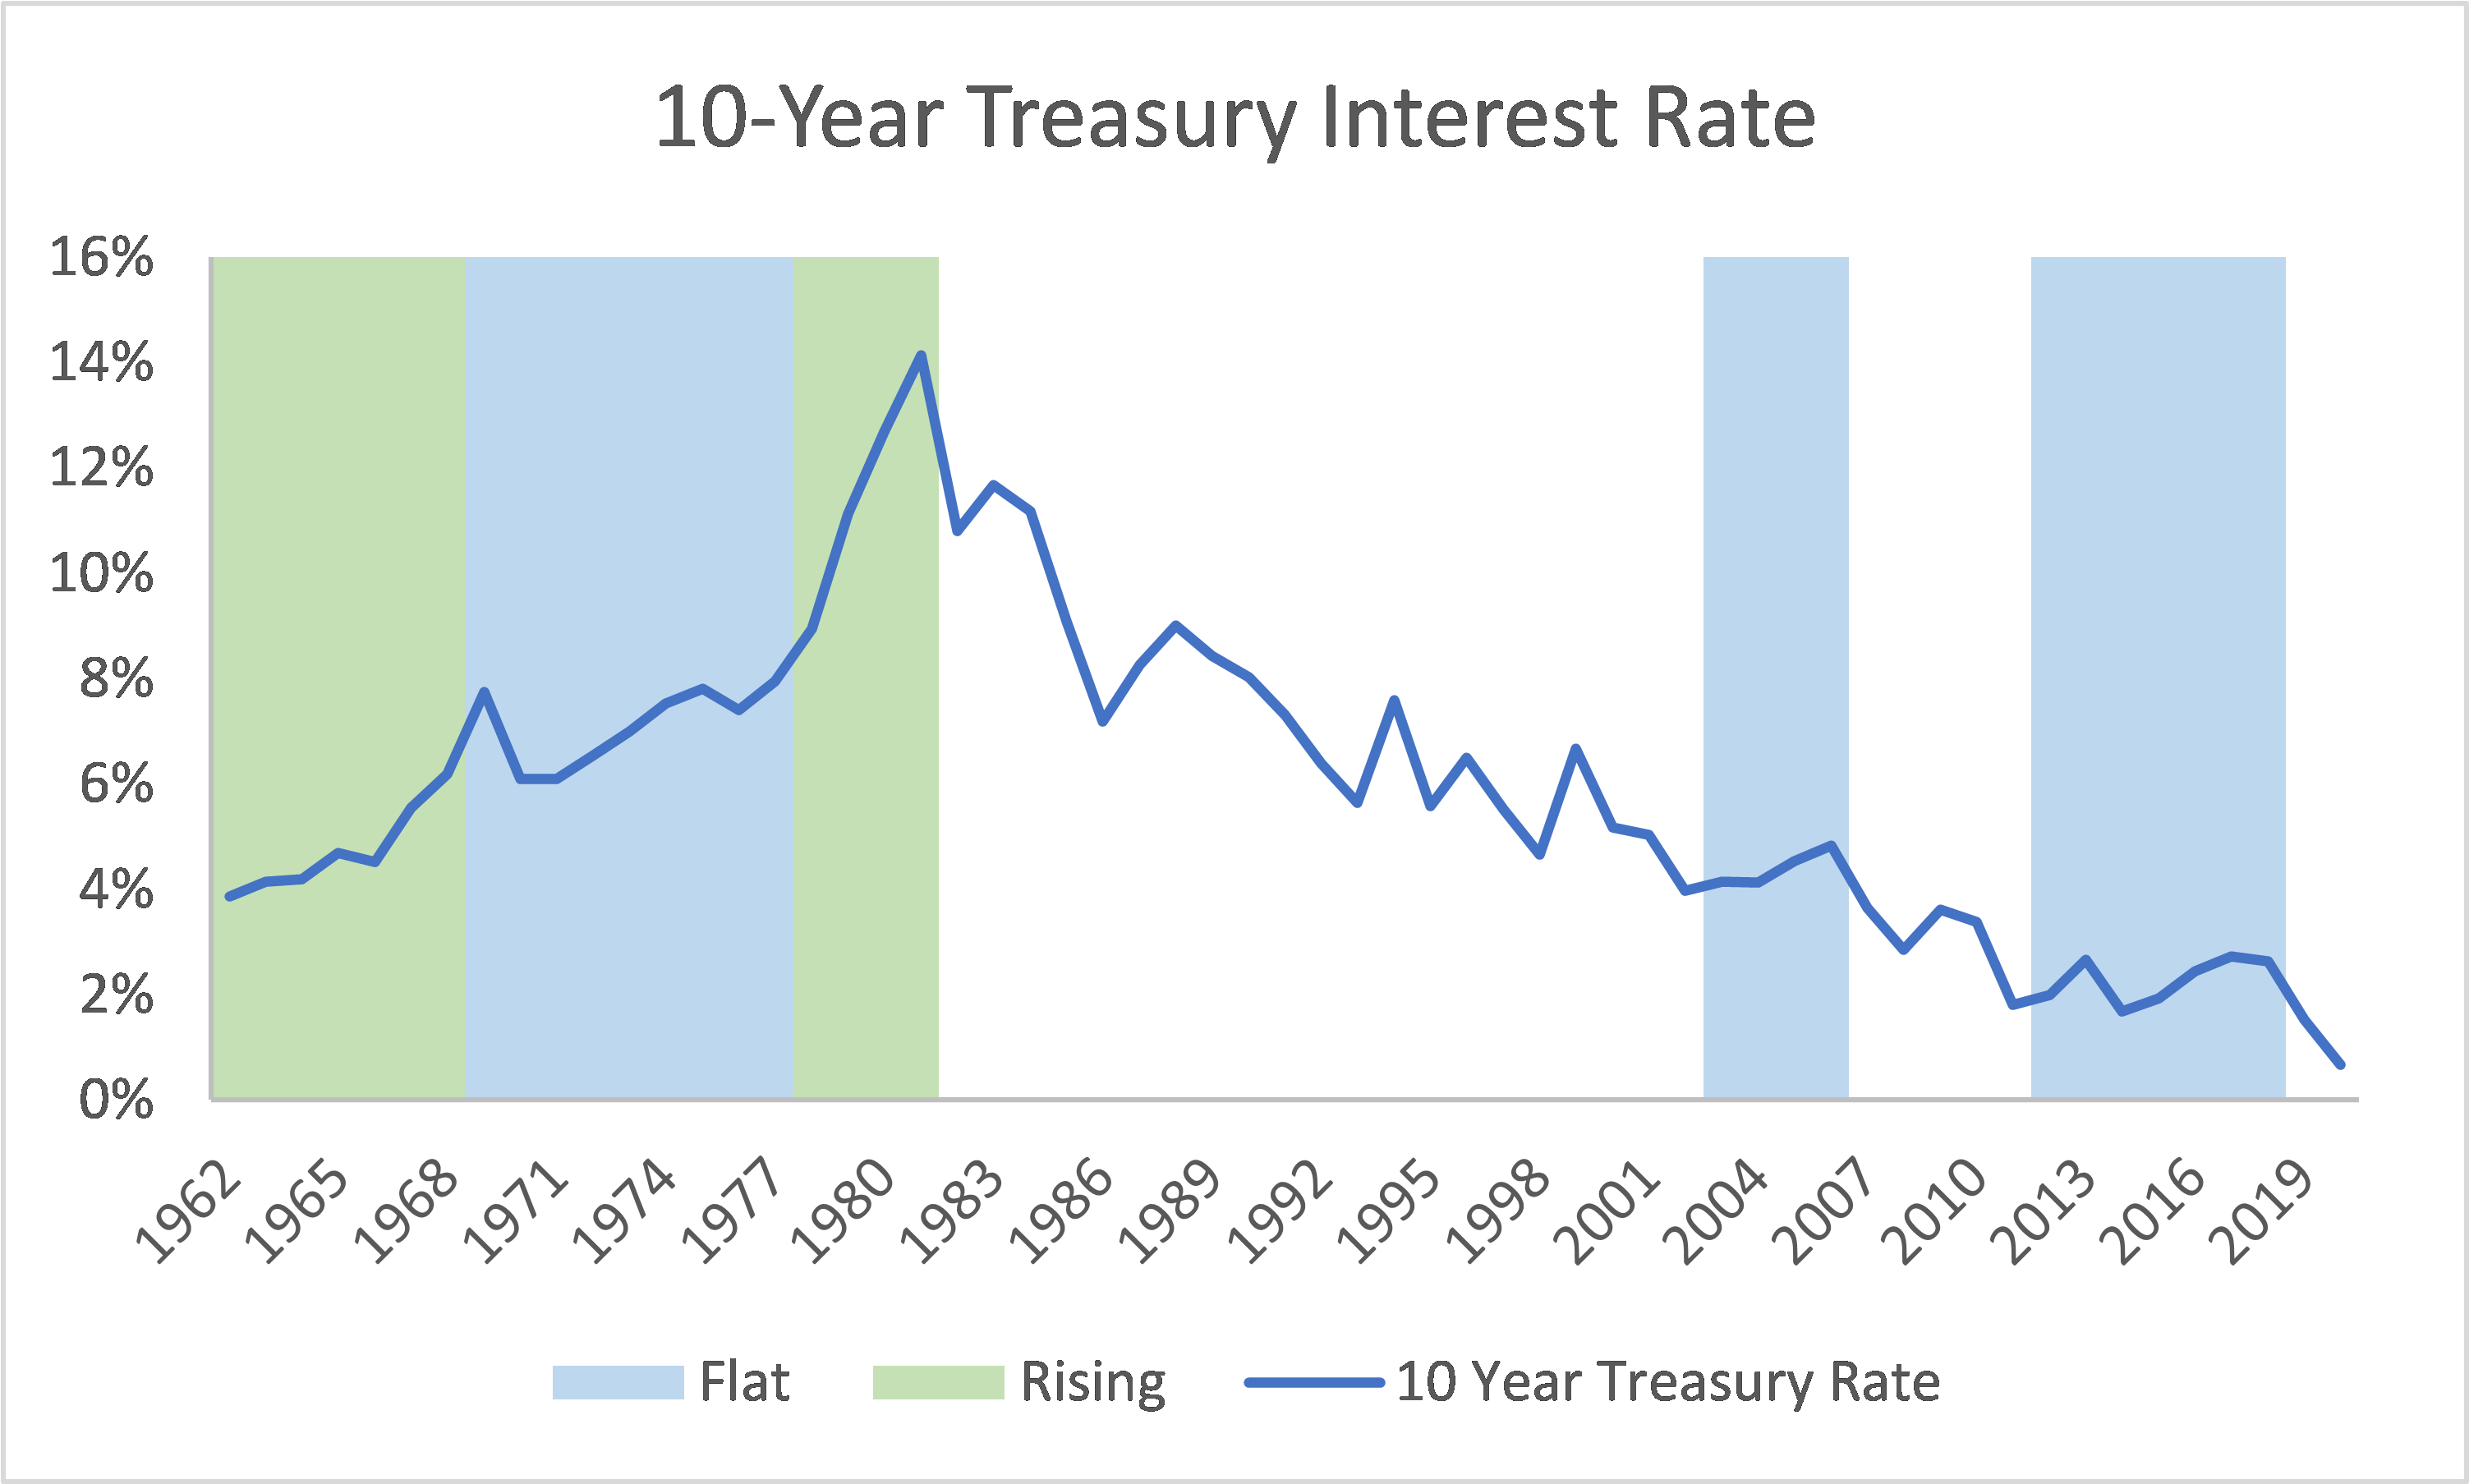 10-Year Treasury Interest Rate rose from 1962-1967 and 1977-1980 and was flat from 1968-1977, 2004-2007 and 2013-2018